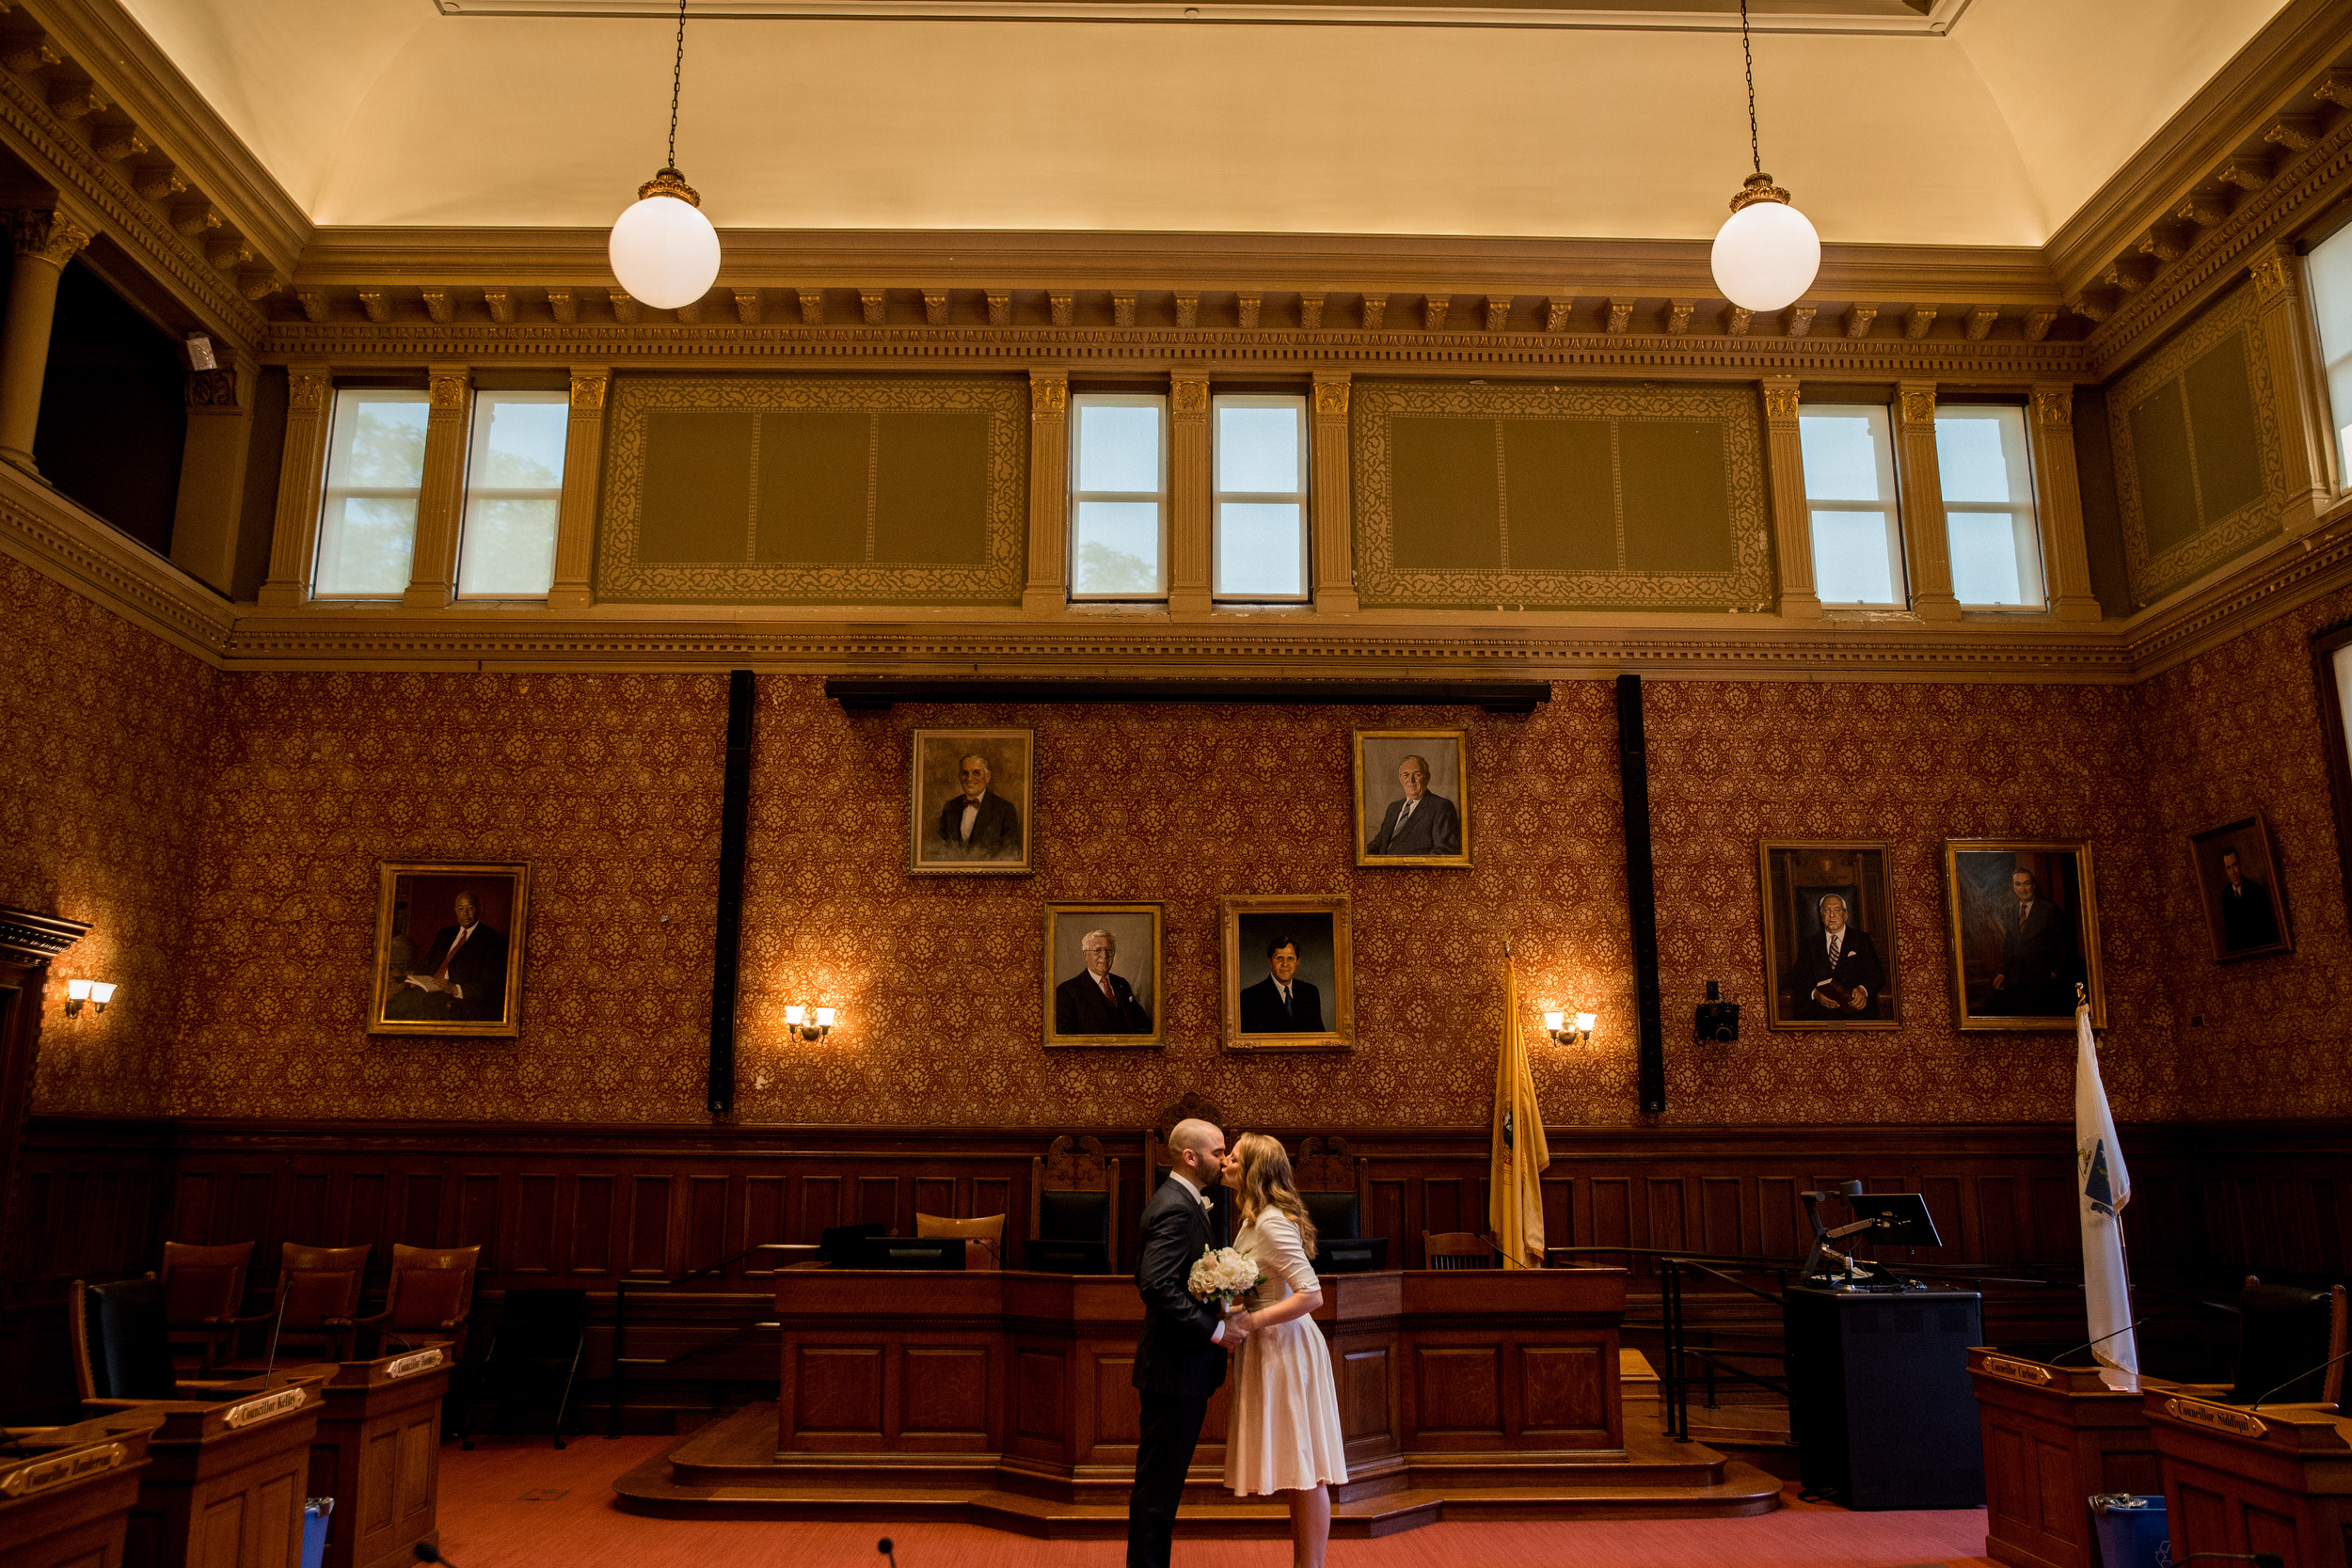 elopement rooms at the cambridge city hall in cambridge, ma